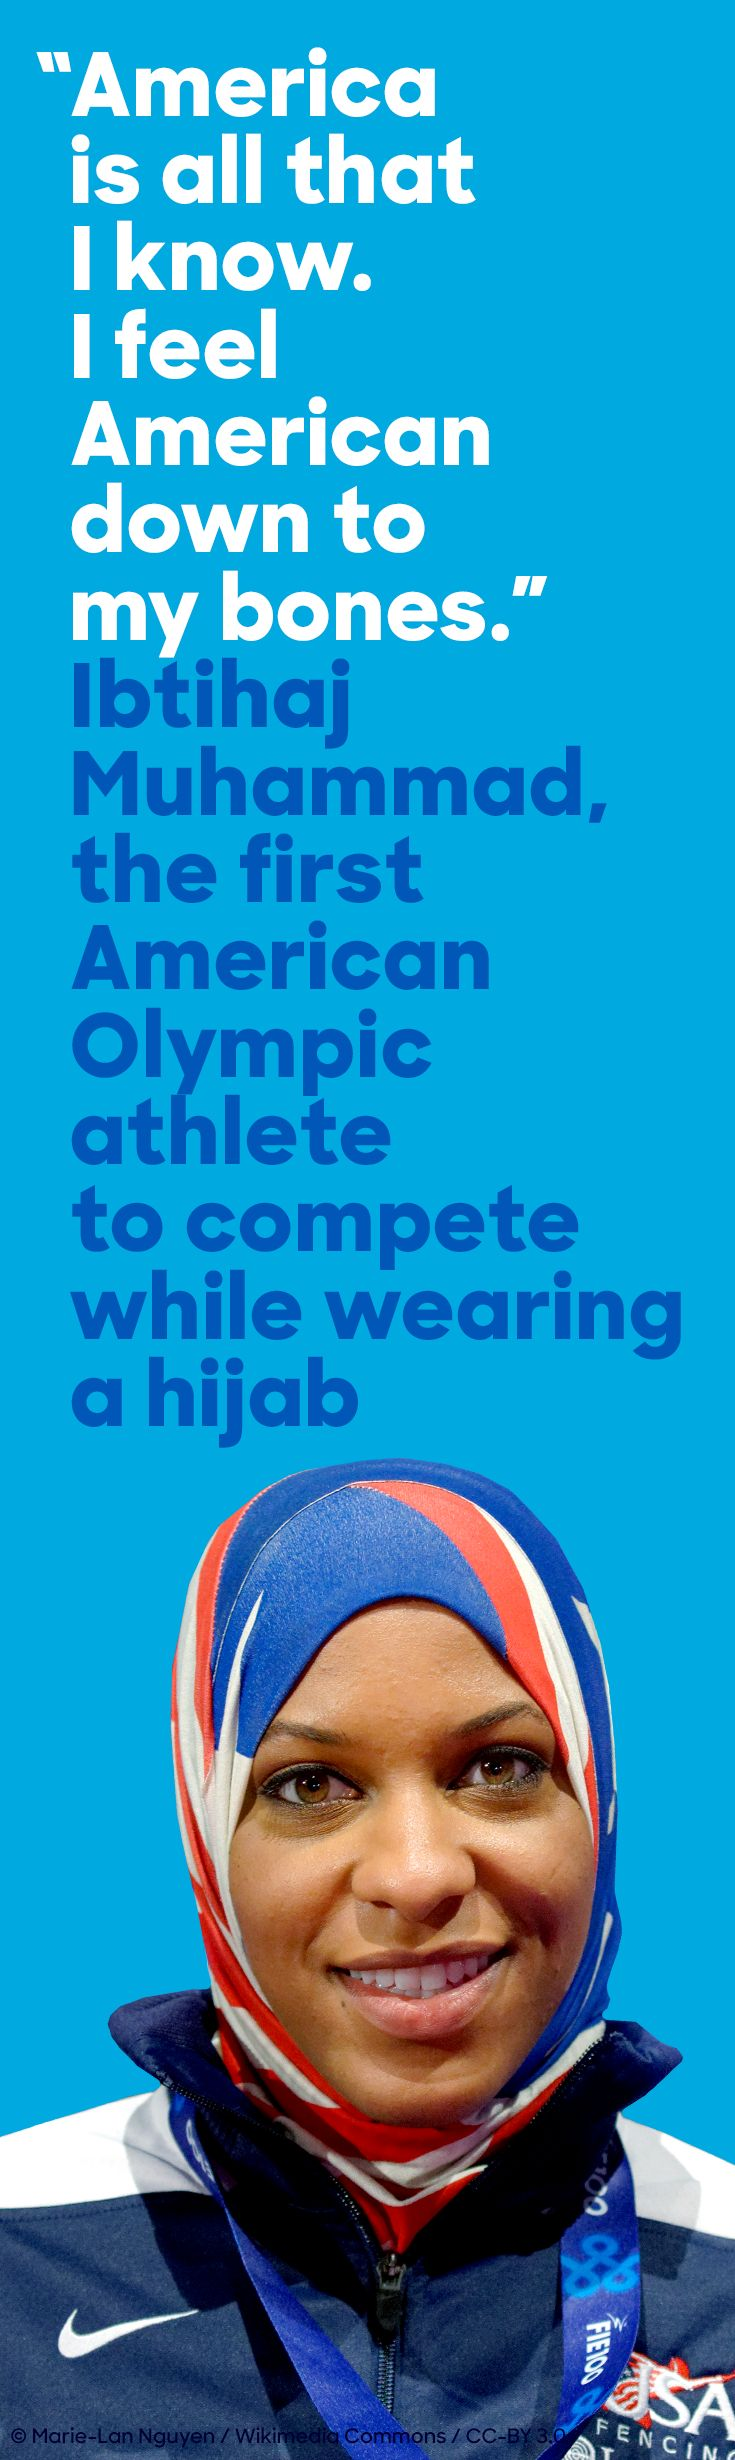 In Rio, fencer Ibtihaj Muhammad became the first American Muslim athlete to compete at the Olympic games while wearing a hijab. In her youth, Ibtihaj searched for a sport that allowed her to dress in accordance with her Muslim faith—and found her calling in fencing. Today, she's a three-time NCAA All-American, the second-ranked woman fencer in the United States, and the twelfth-ranked woman fencer in the world.